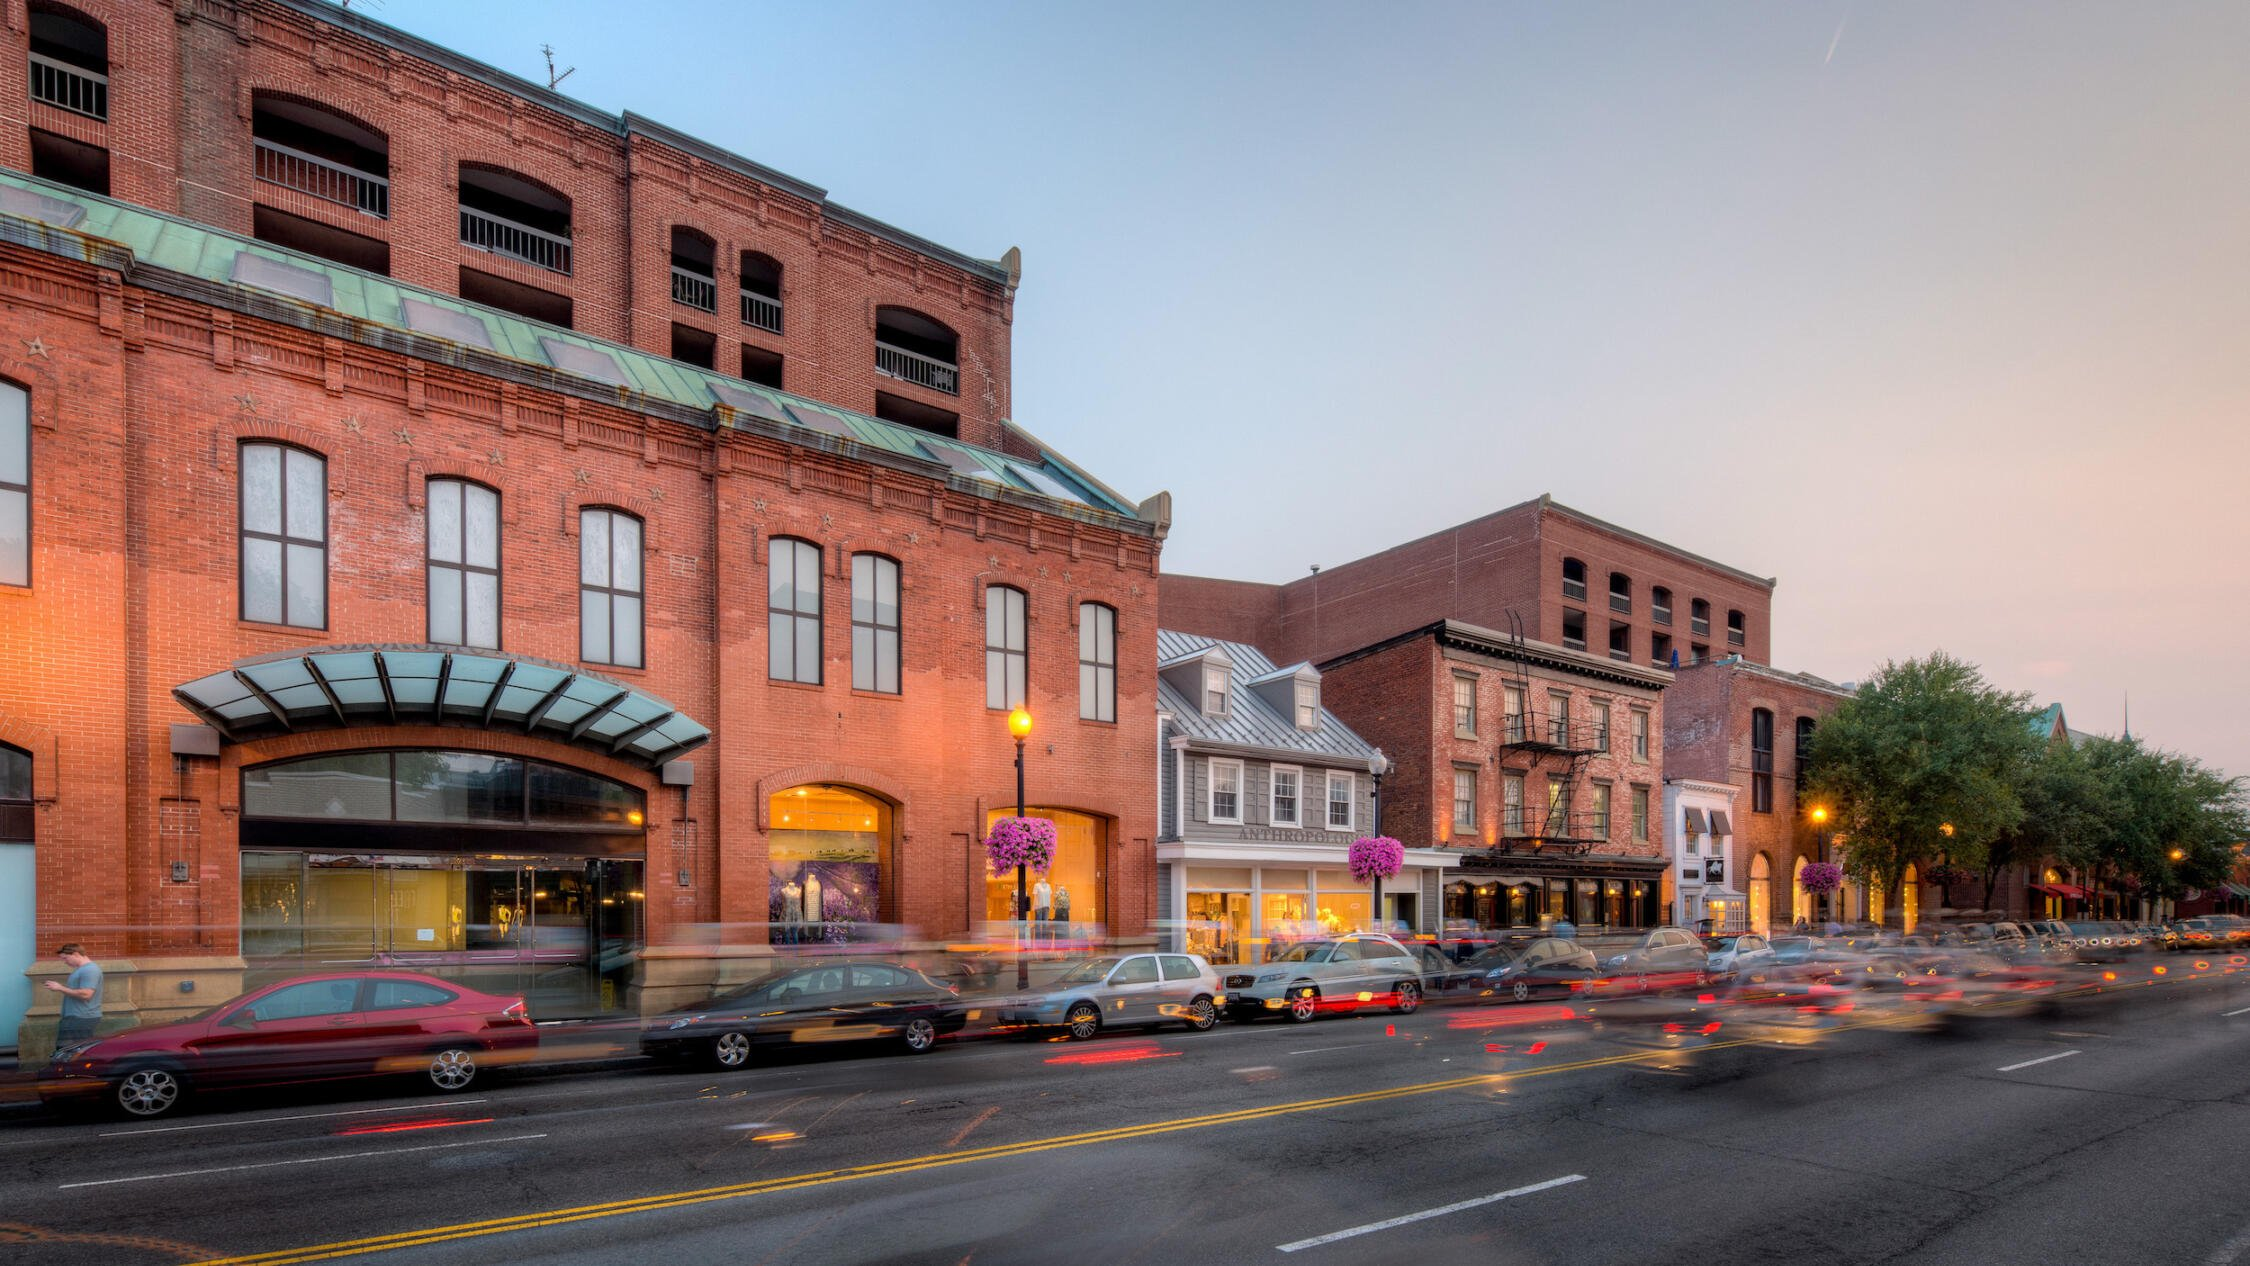 Georgetown Park retail shops exterior at sunset with cars in foreground